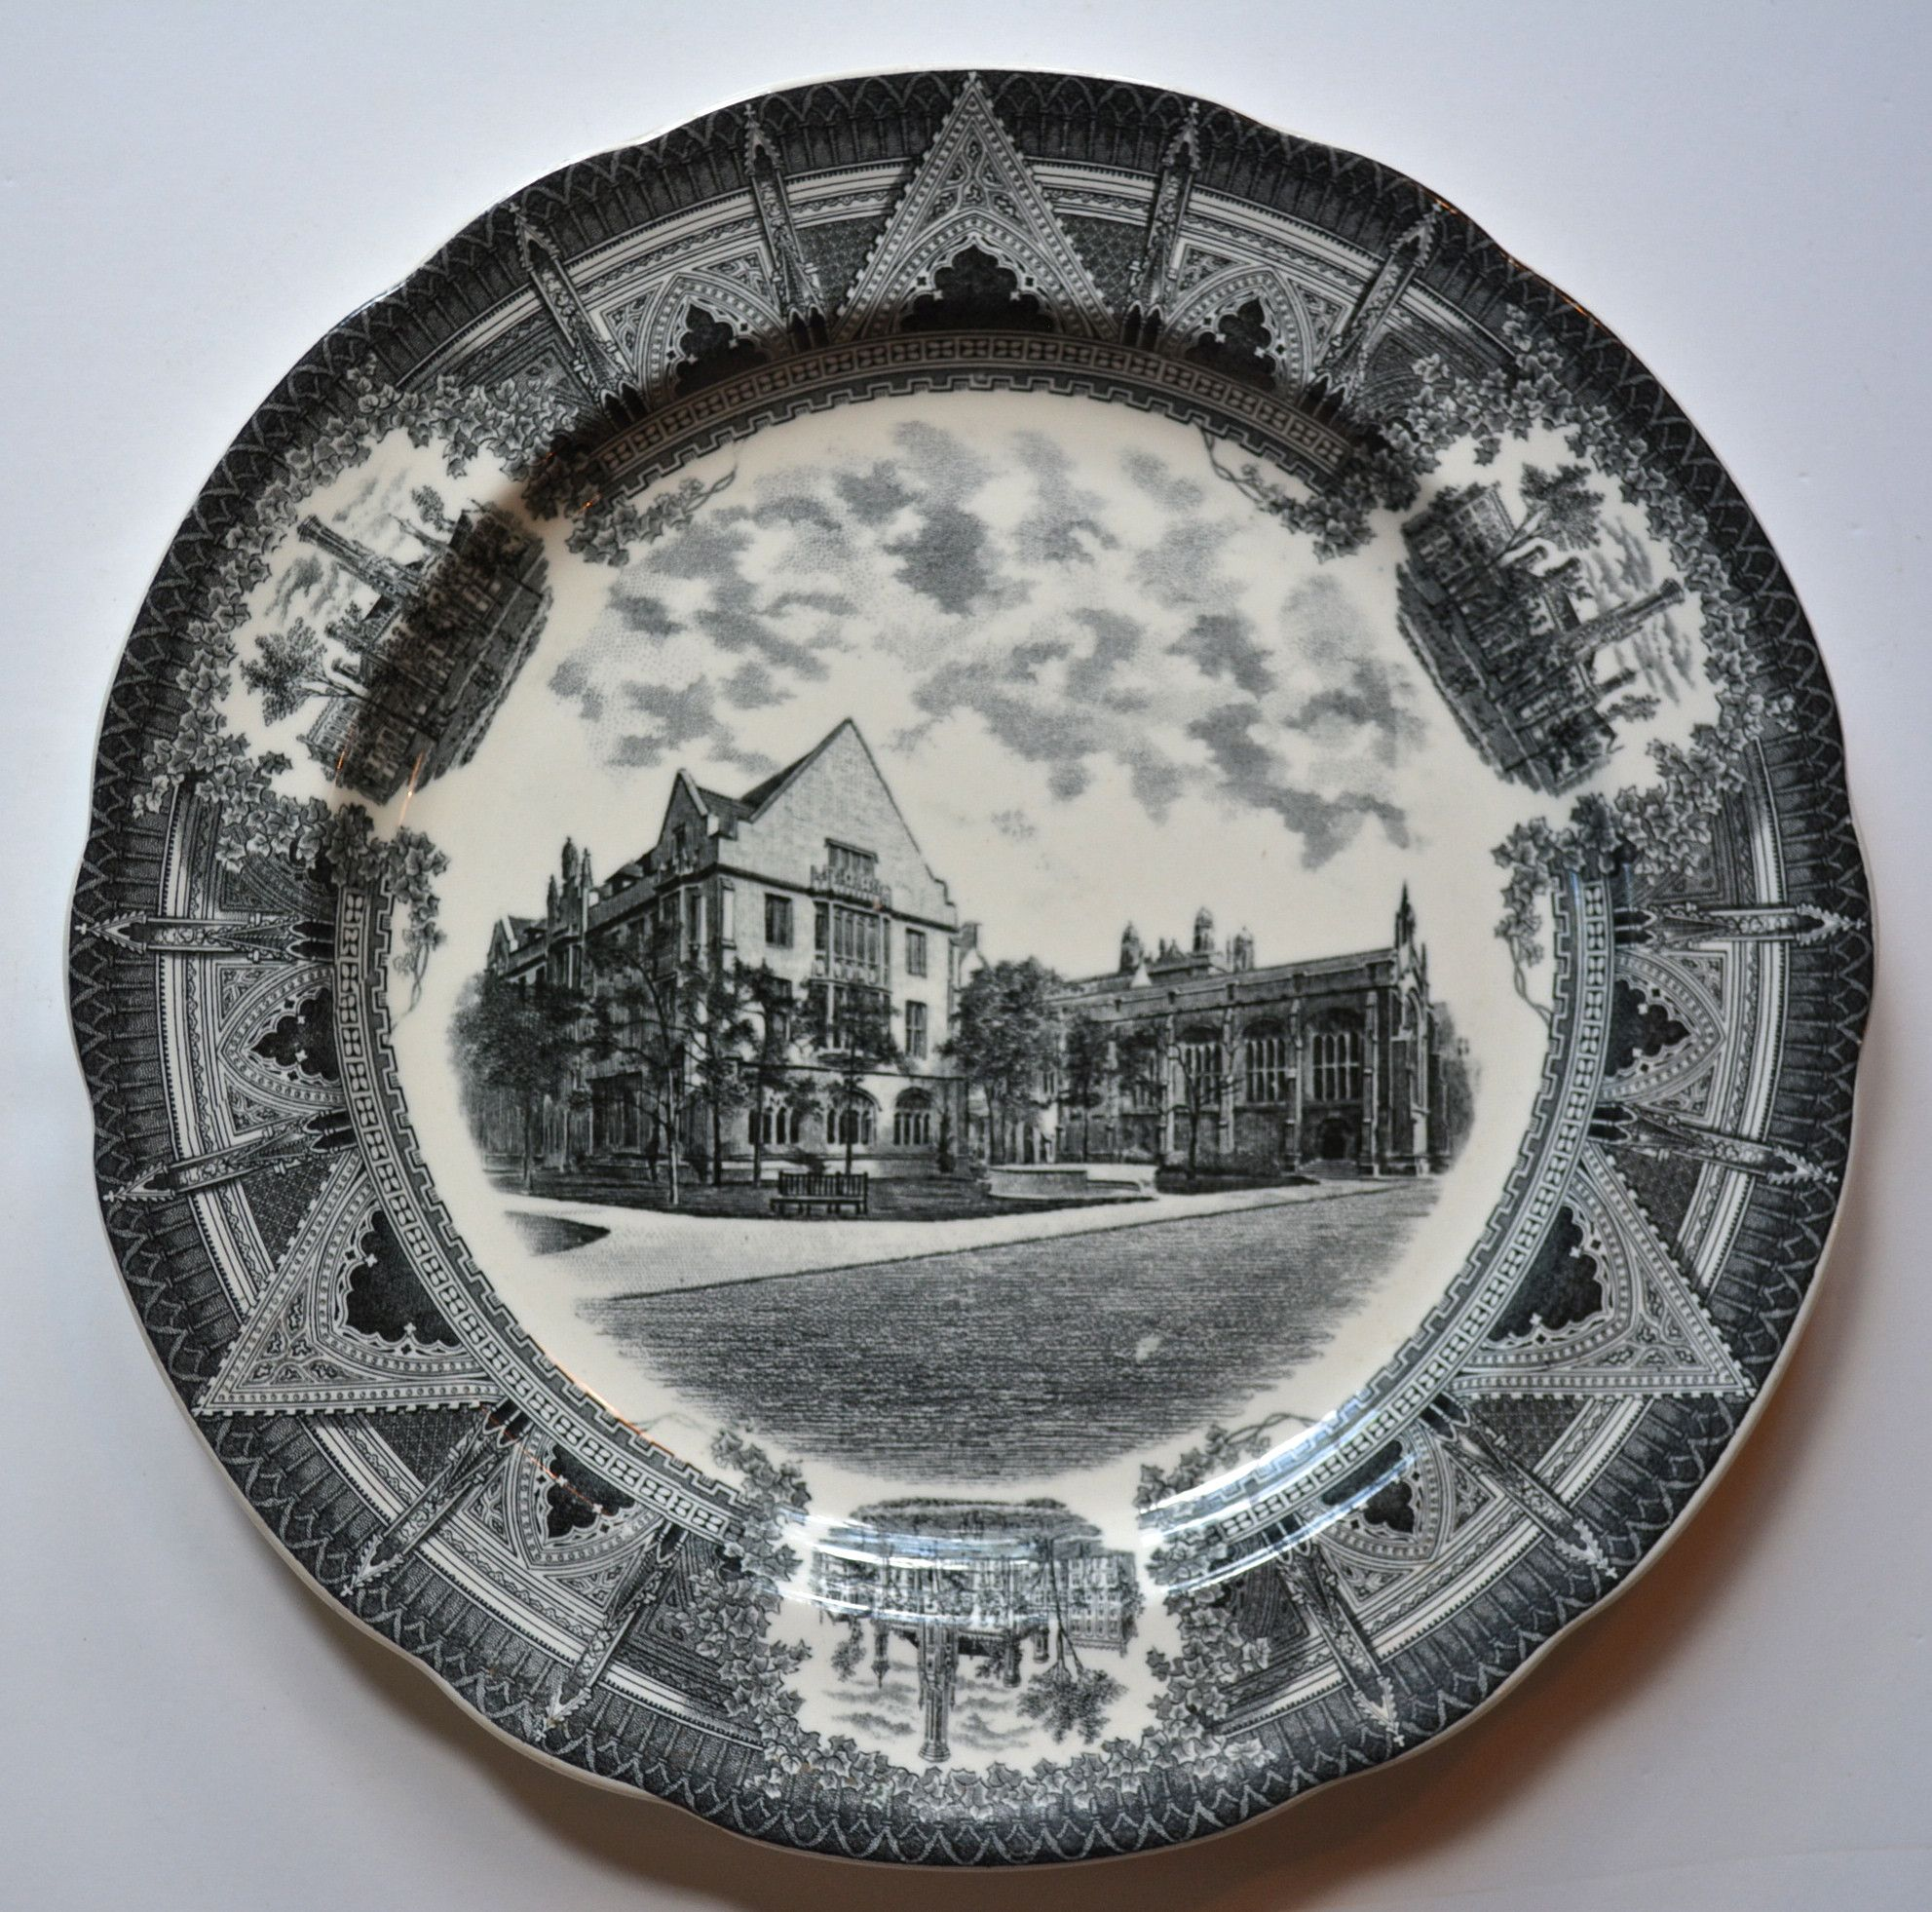 Spode Copeland Black Transferware Charger Plate Stunning Neo Gothic Style Architectural Border Chicago University Swift Hall & Spode Copeland Black Transferware Charger Plate Stunning Neo Gothic ...